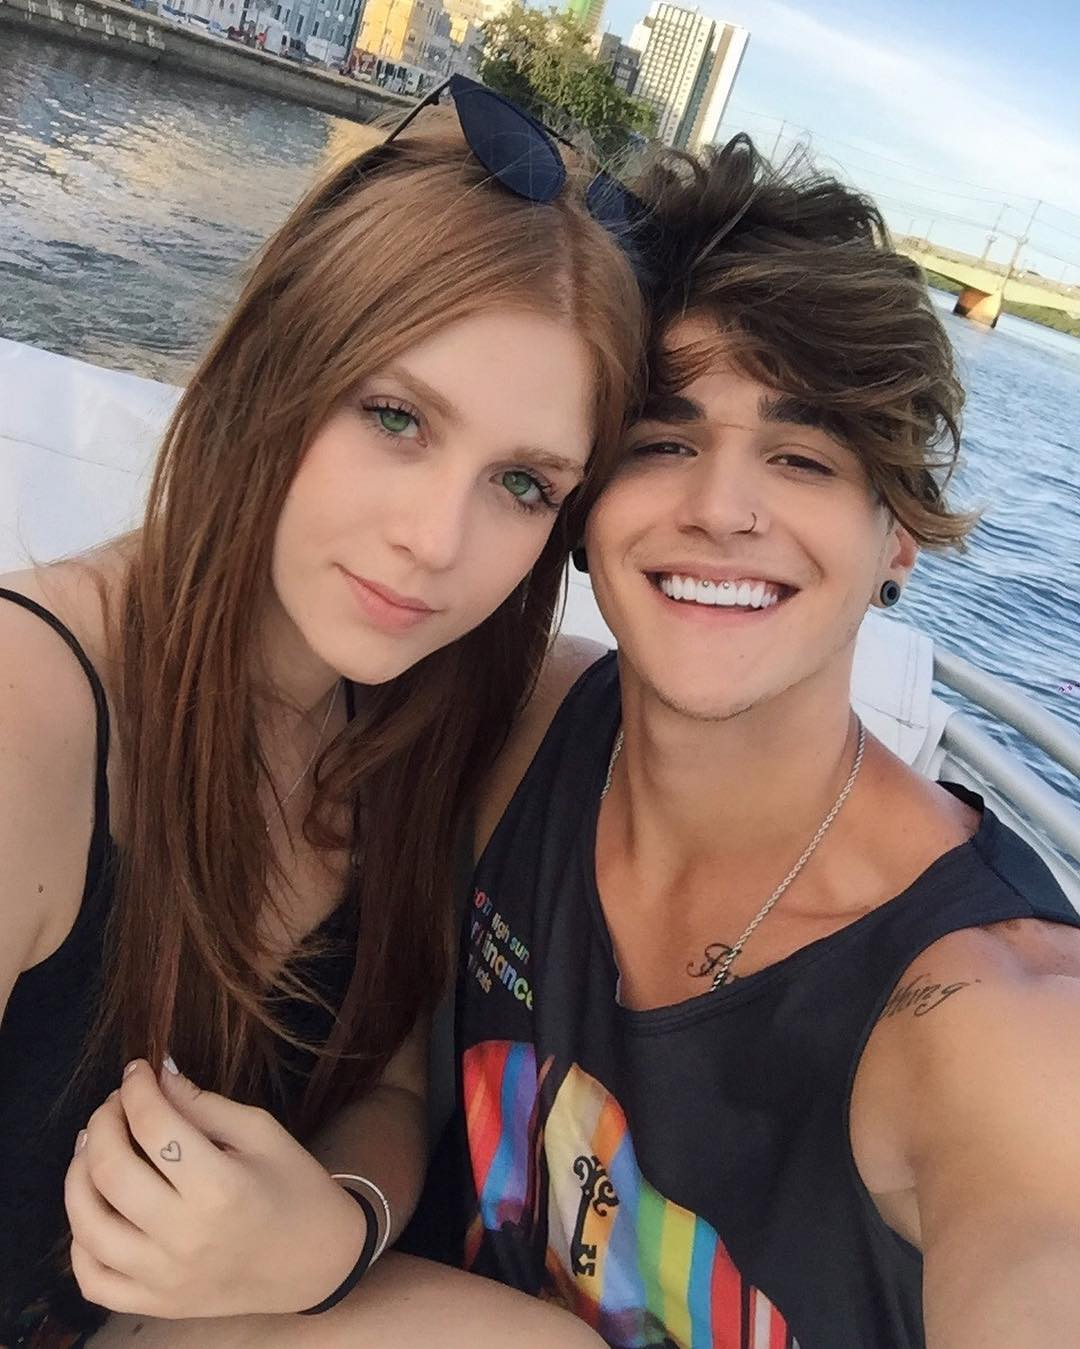 Alex Mapeli with his girlfriend Flavia Charallo